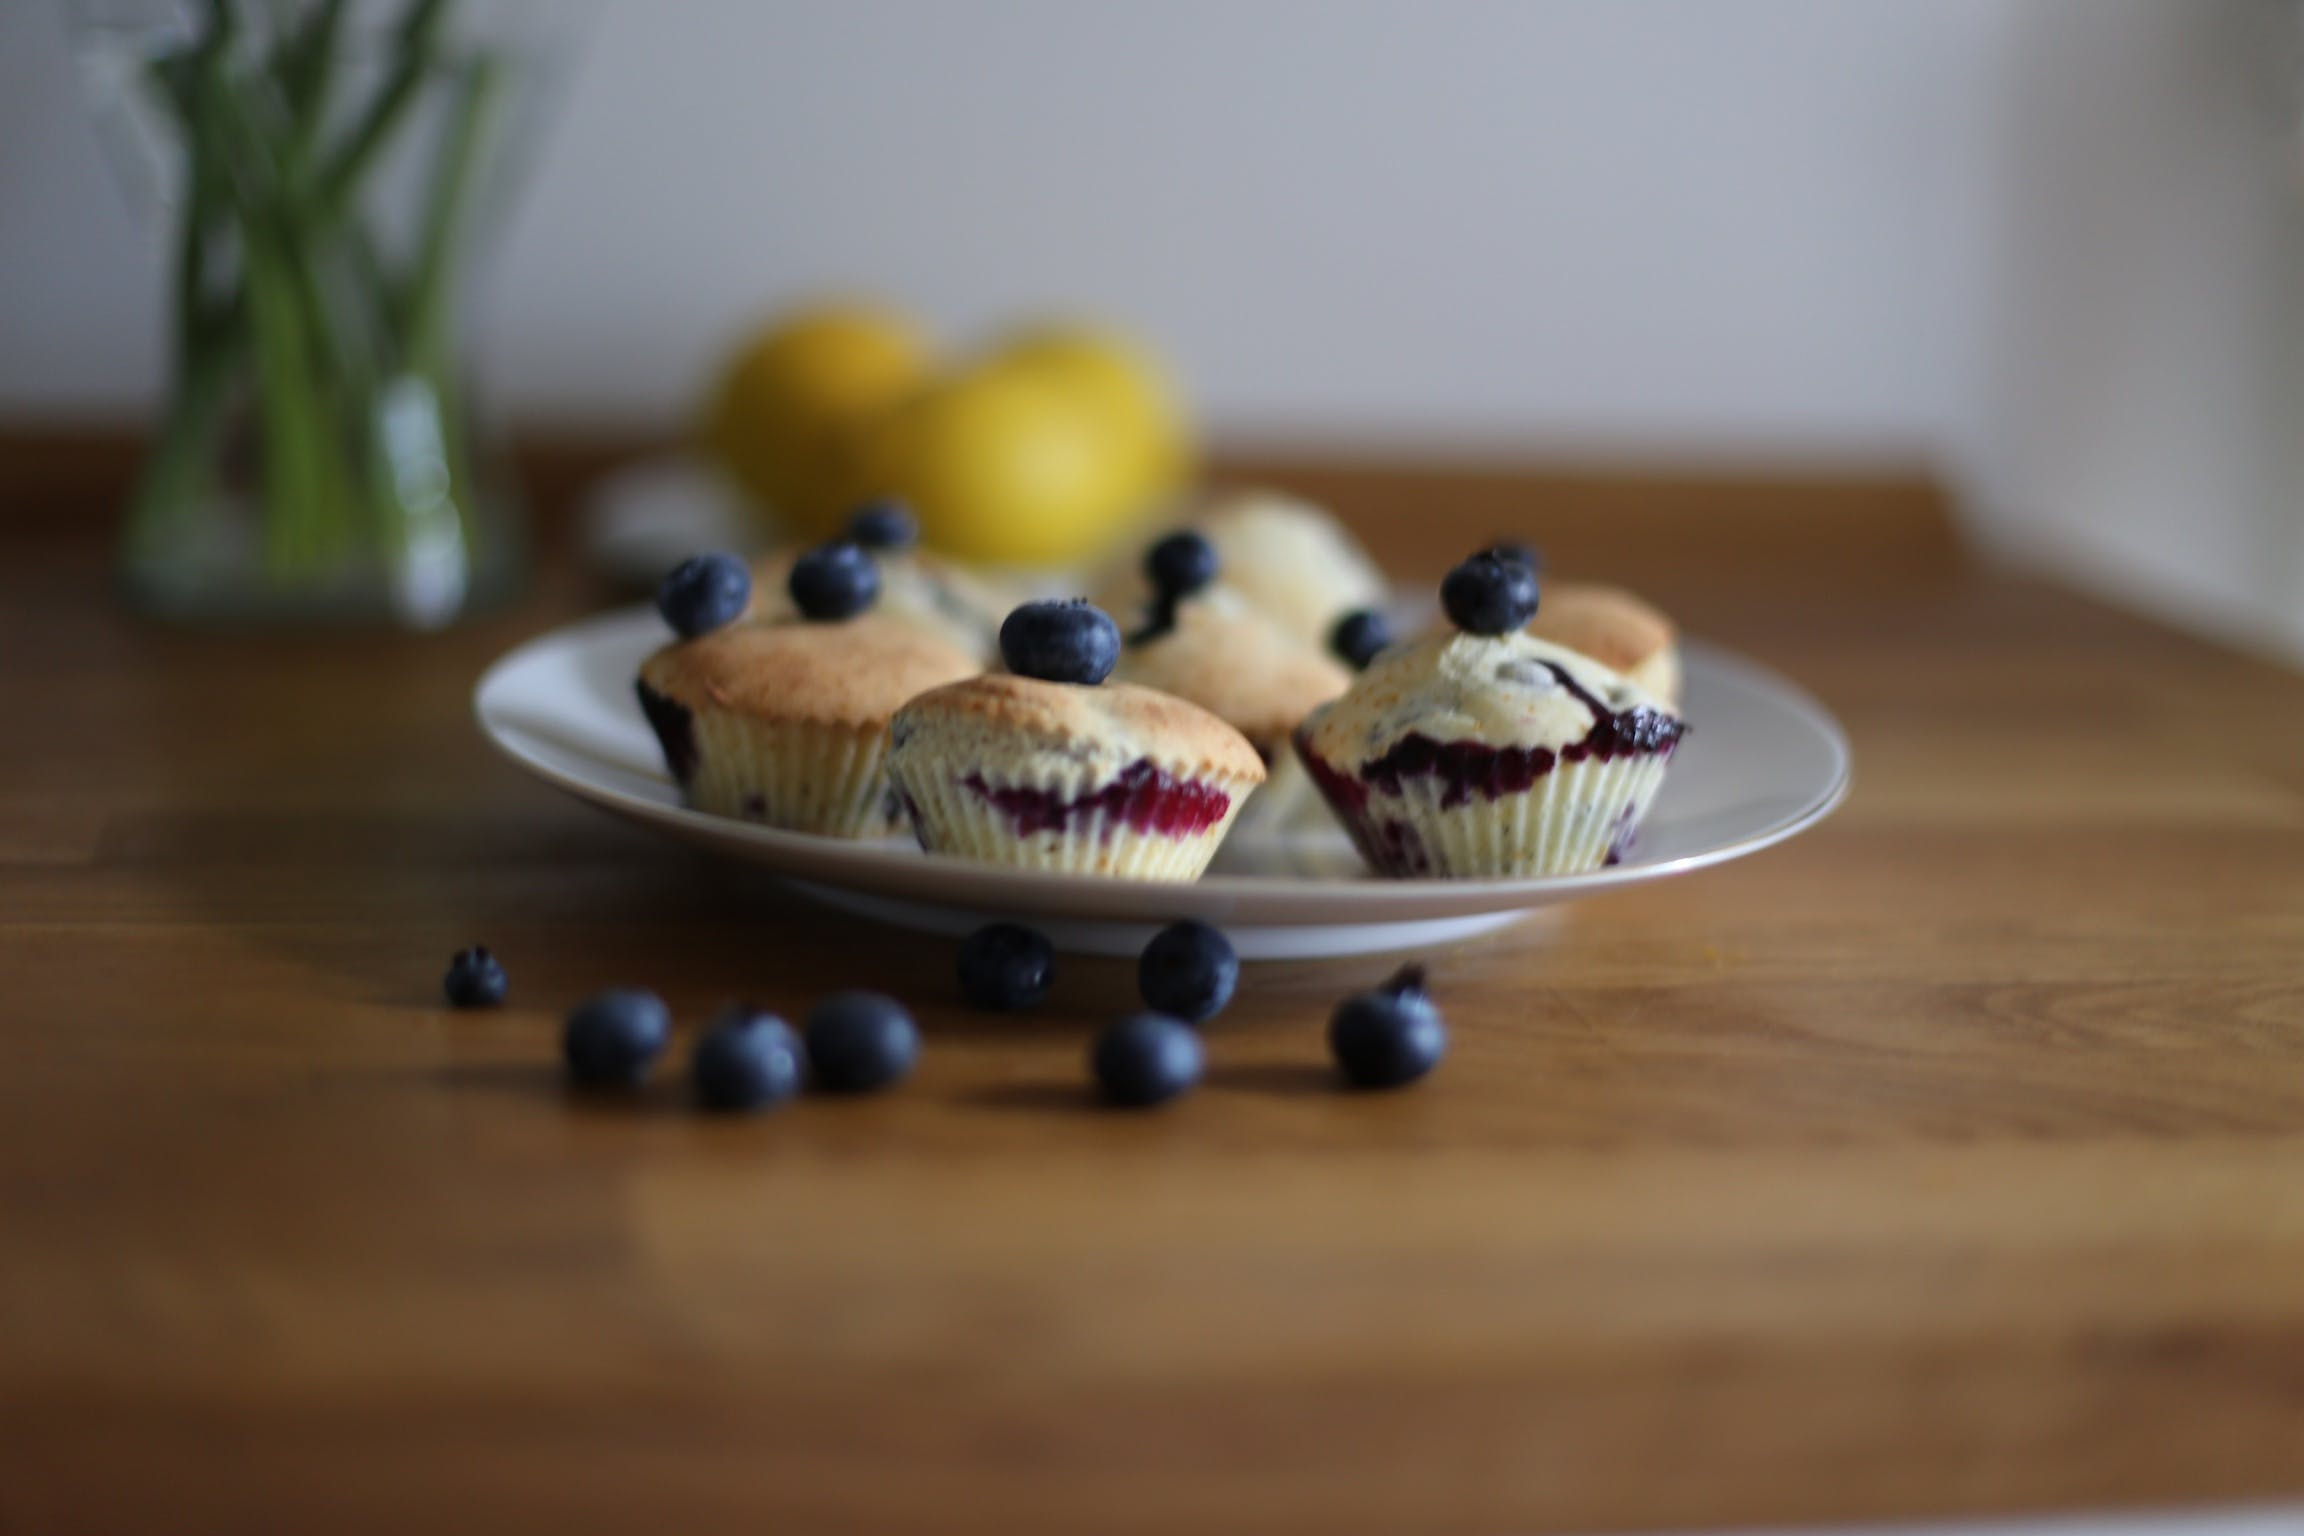 Free stock photo of blueberries, blueberry, blueberry muffins, cupcake